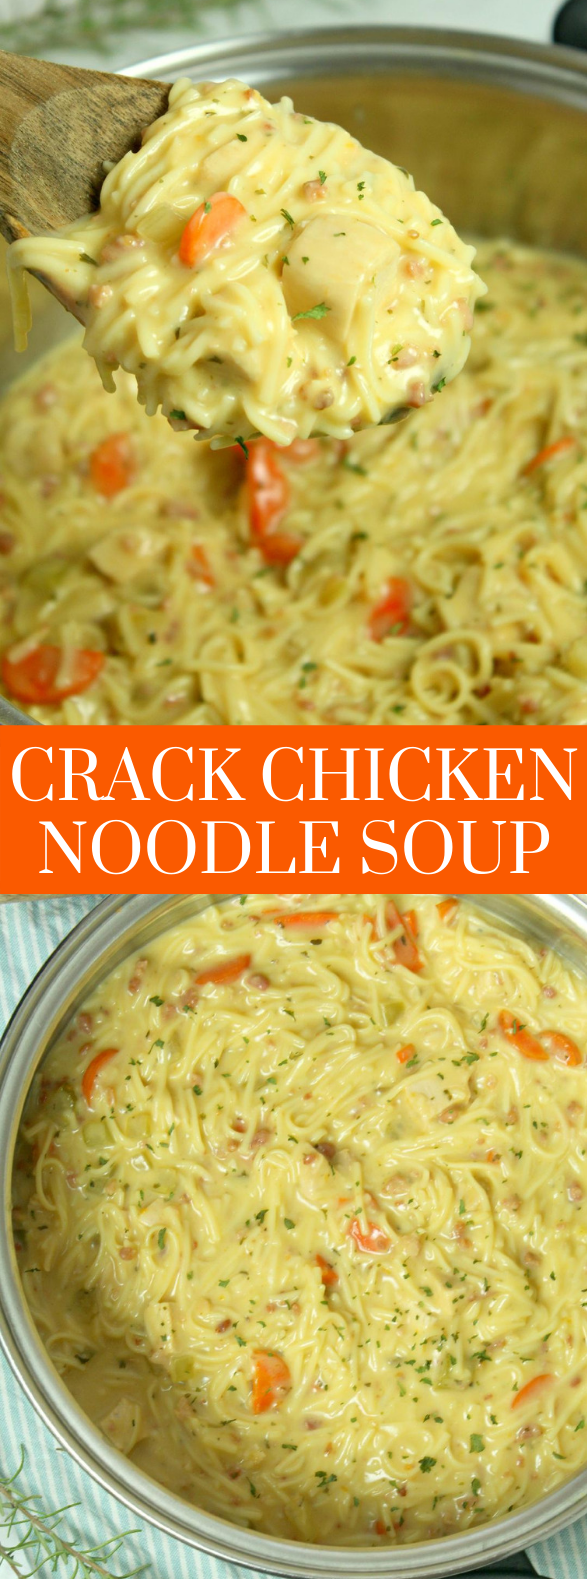 Crack Chicken Noodle Soup #dinner #recipes #dinnerrecipes